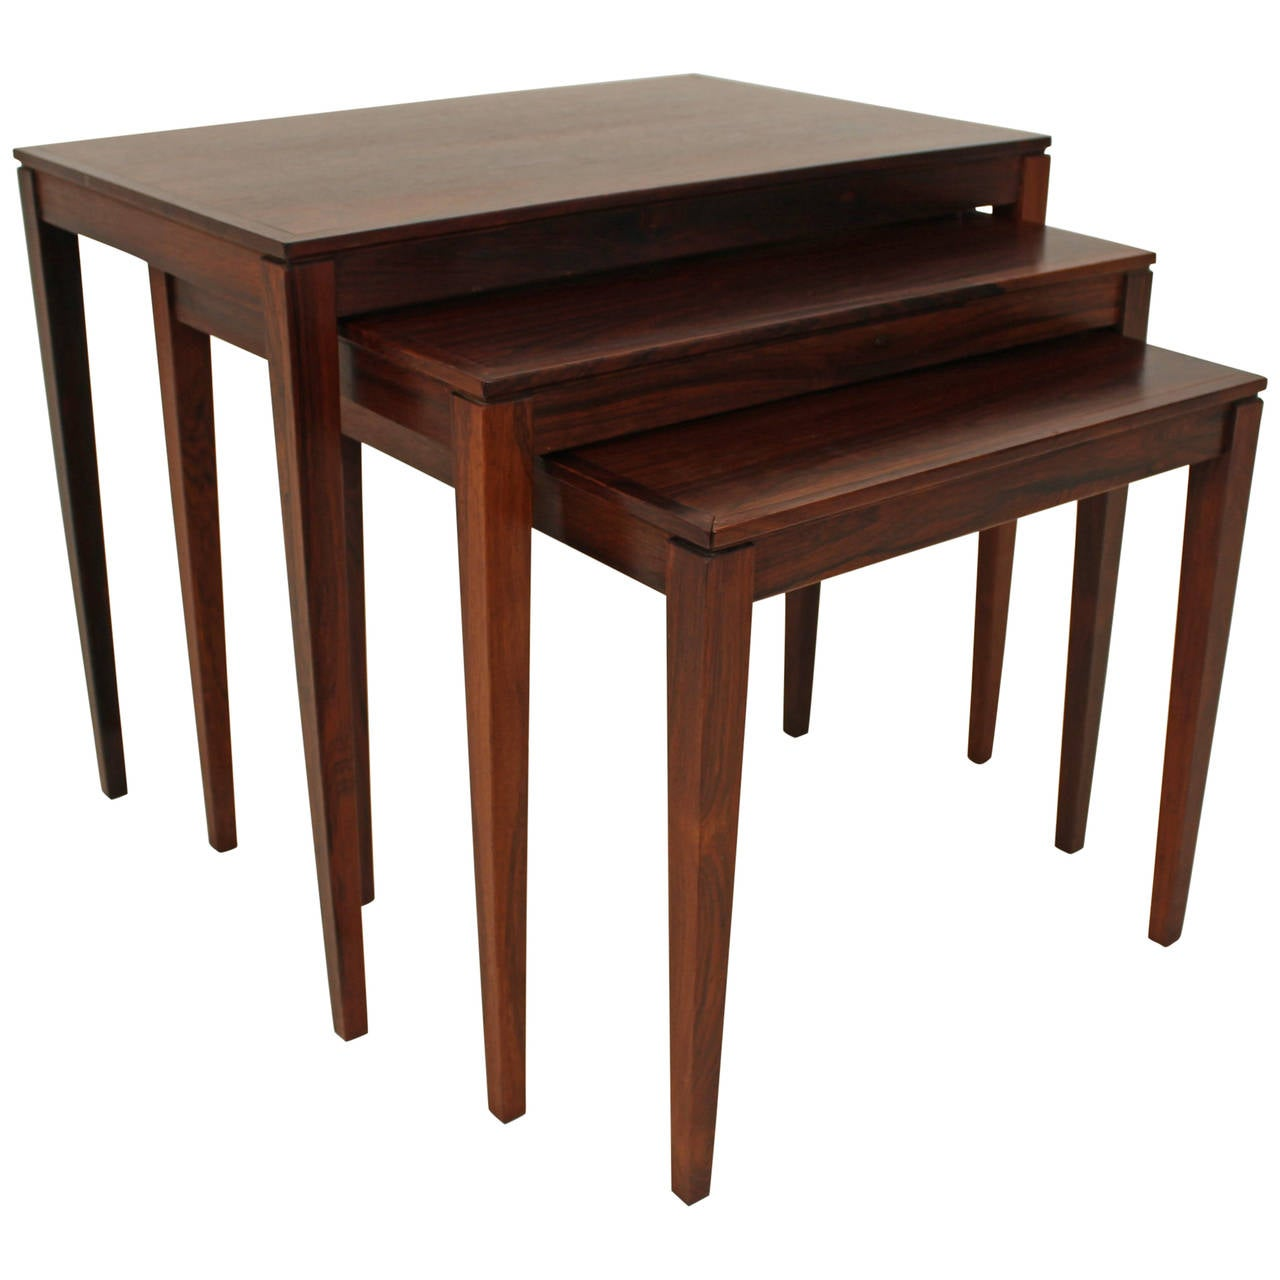 1960s Rosewood Nesting or Stacking Tables For Sale